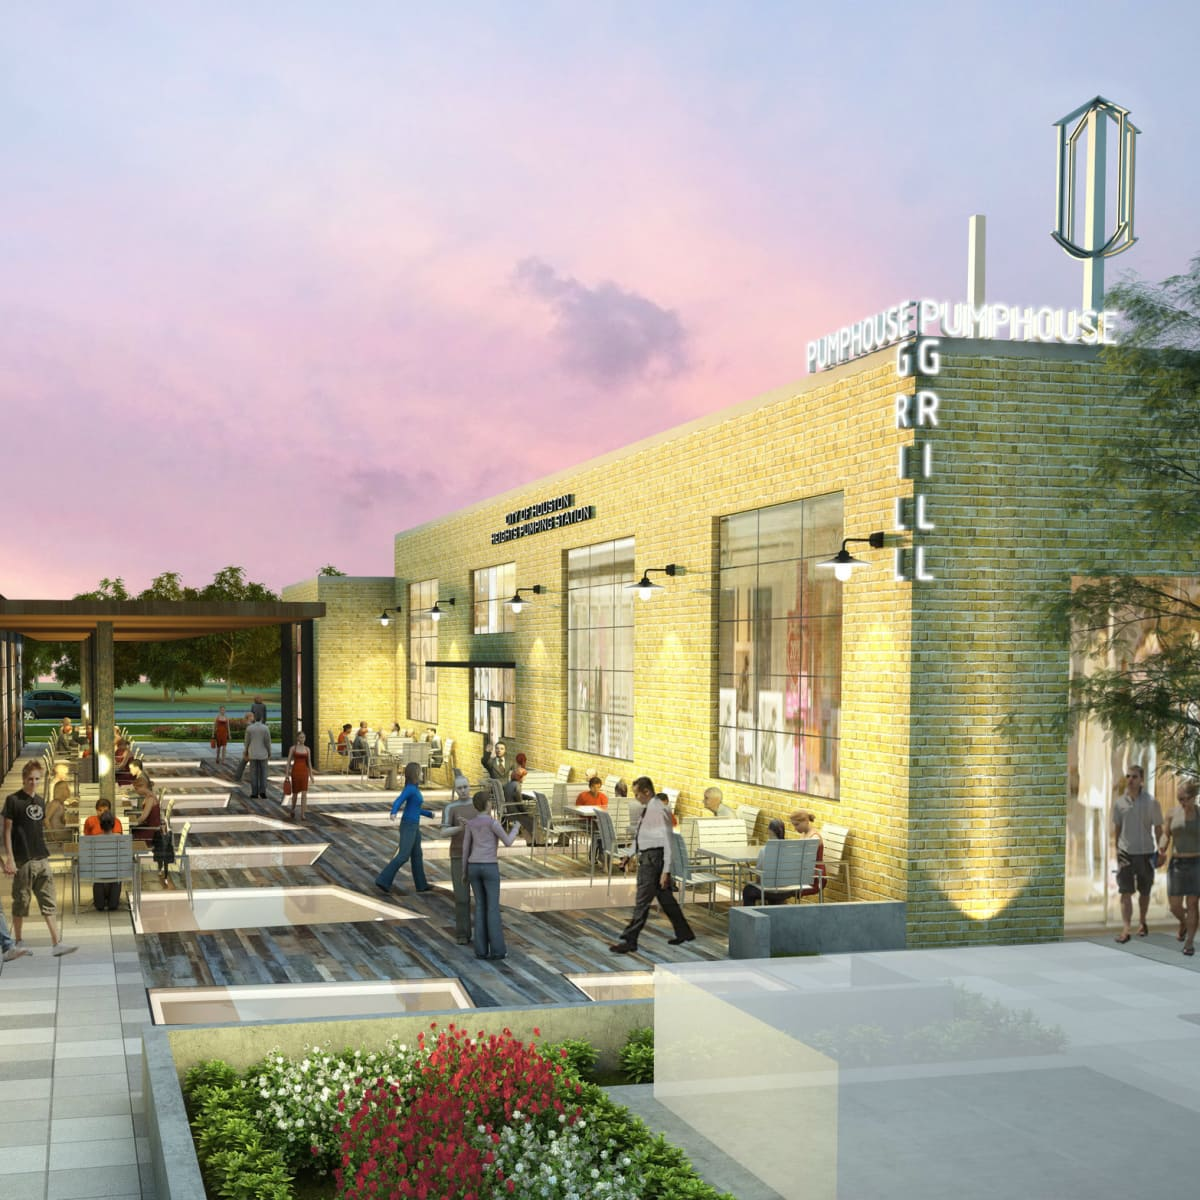 Heights Waterworks exterior rendering shoppers courtyard restaurant